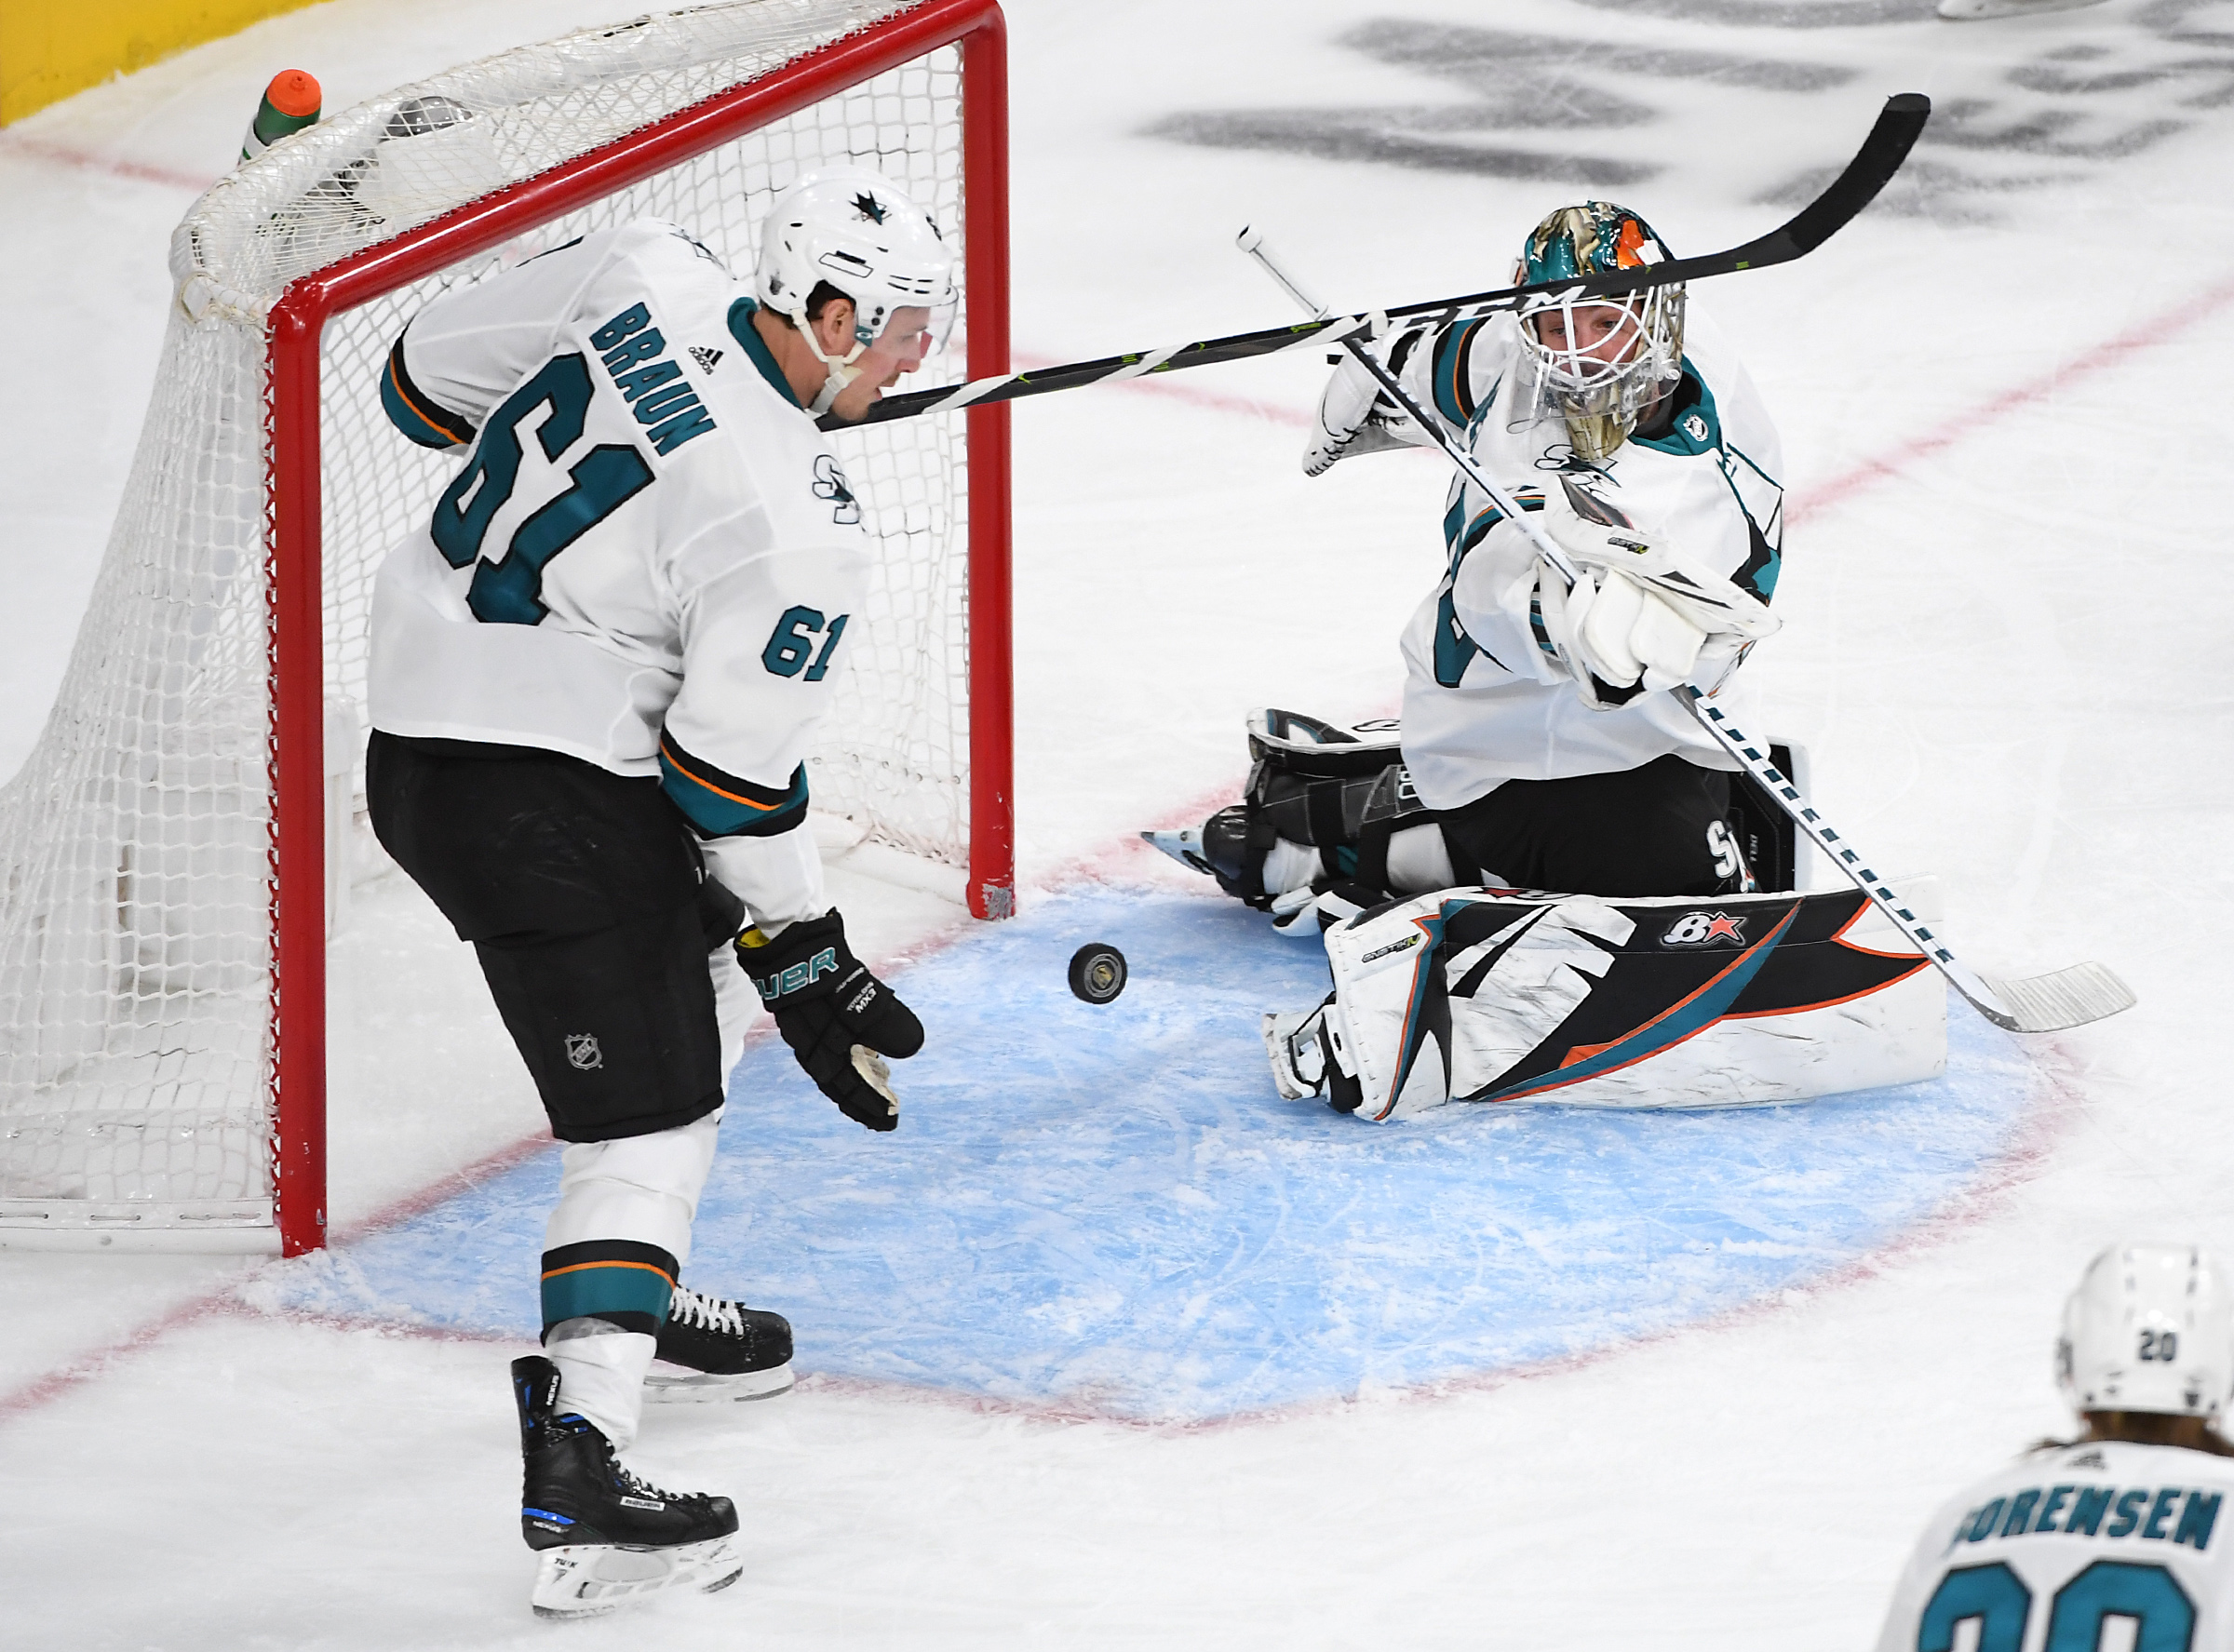 Apr 16, 2019; Las Vegas, NV, USA; San Jose Sharks goaltender Aaron Dell (30) follows the play as San Jose Sharks defenseman Justin Braun (61) gloves the puck near the front of his net during the third period against the Vegas Golden Knights in game four